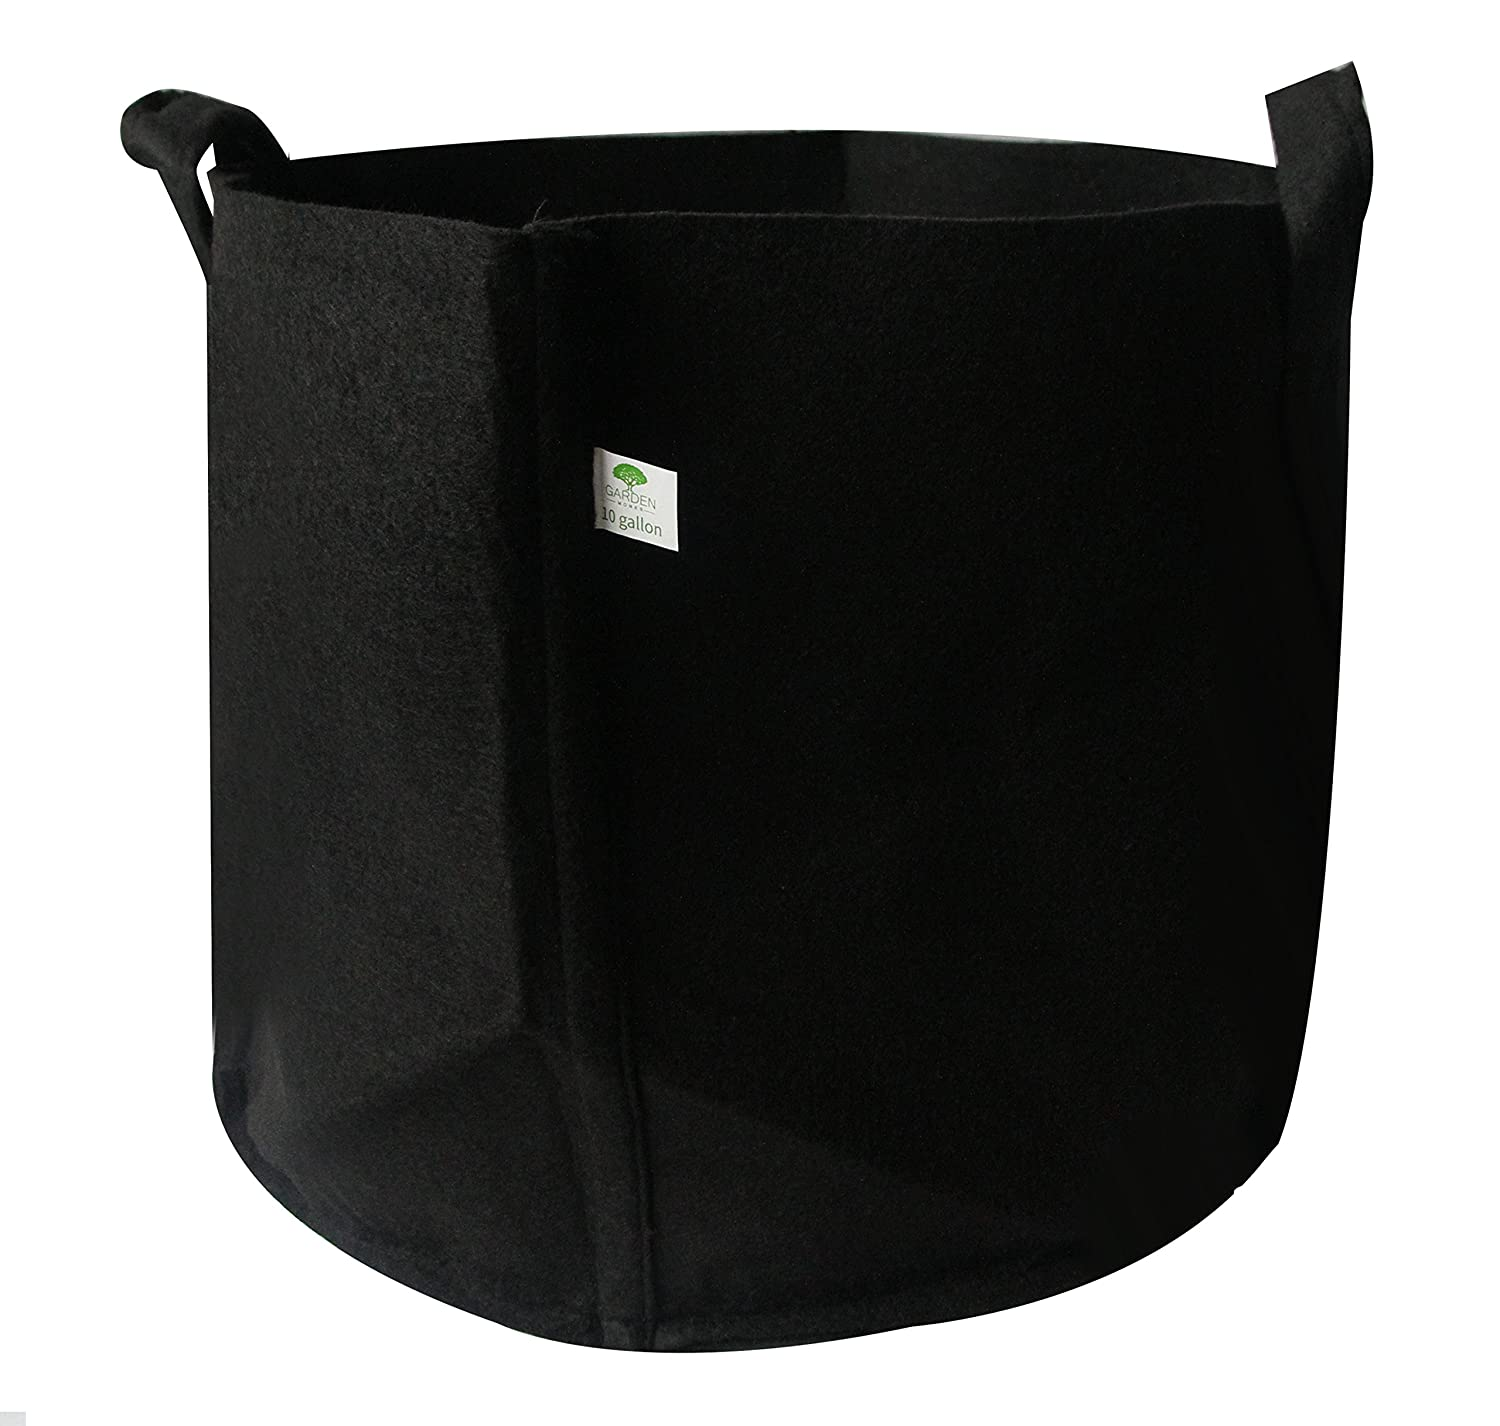 Grow Bags 10 Gallons Aeration Fabric Pots with Handles for Plant Growth Boost and Better Root Structure, Healthy Crops All Year Long, Eco-Friendly Materials, for Farmers and Gardeners 10 Gallons